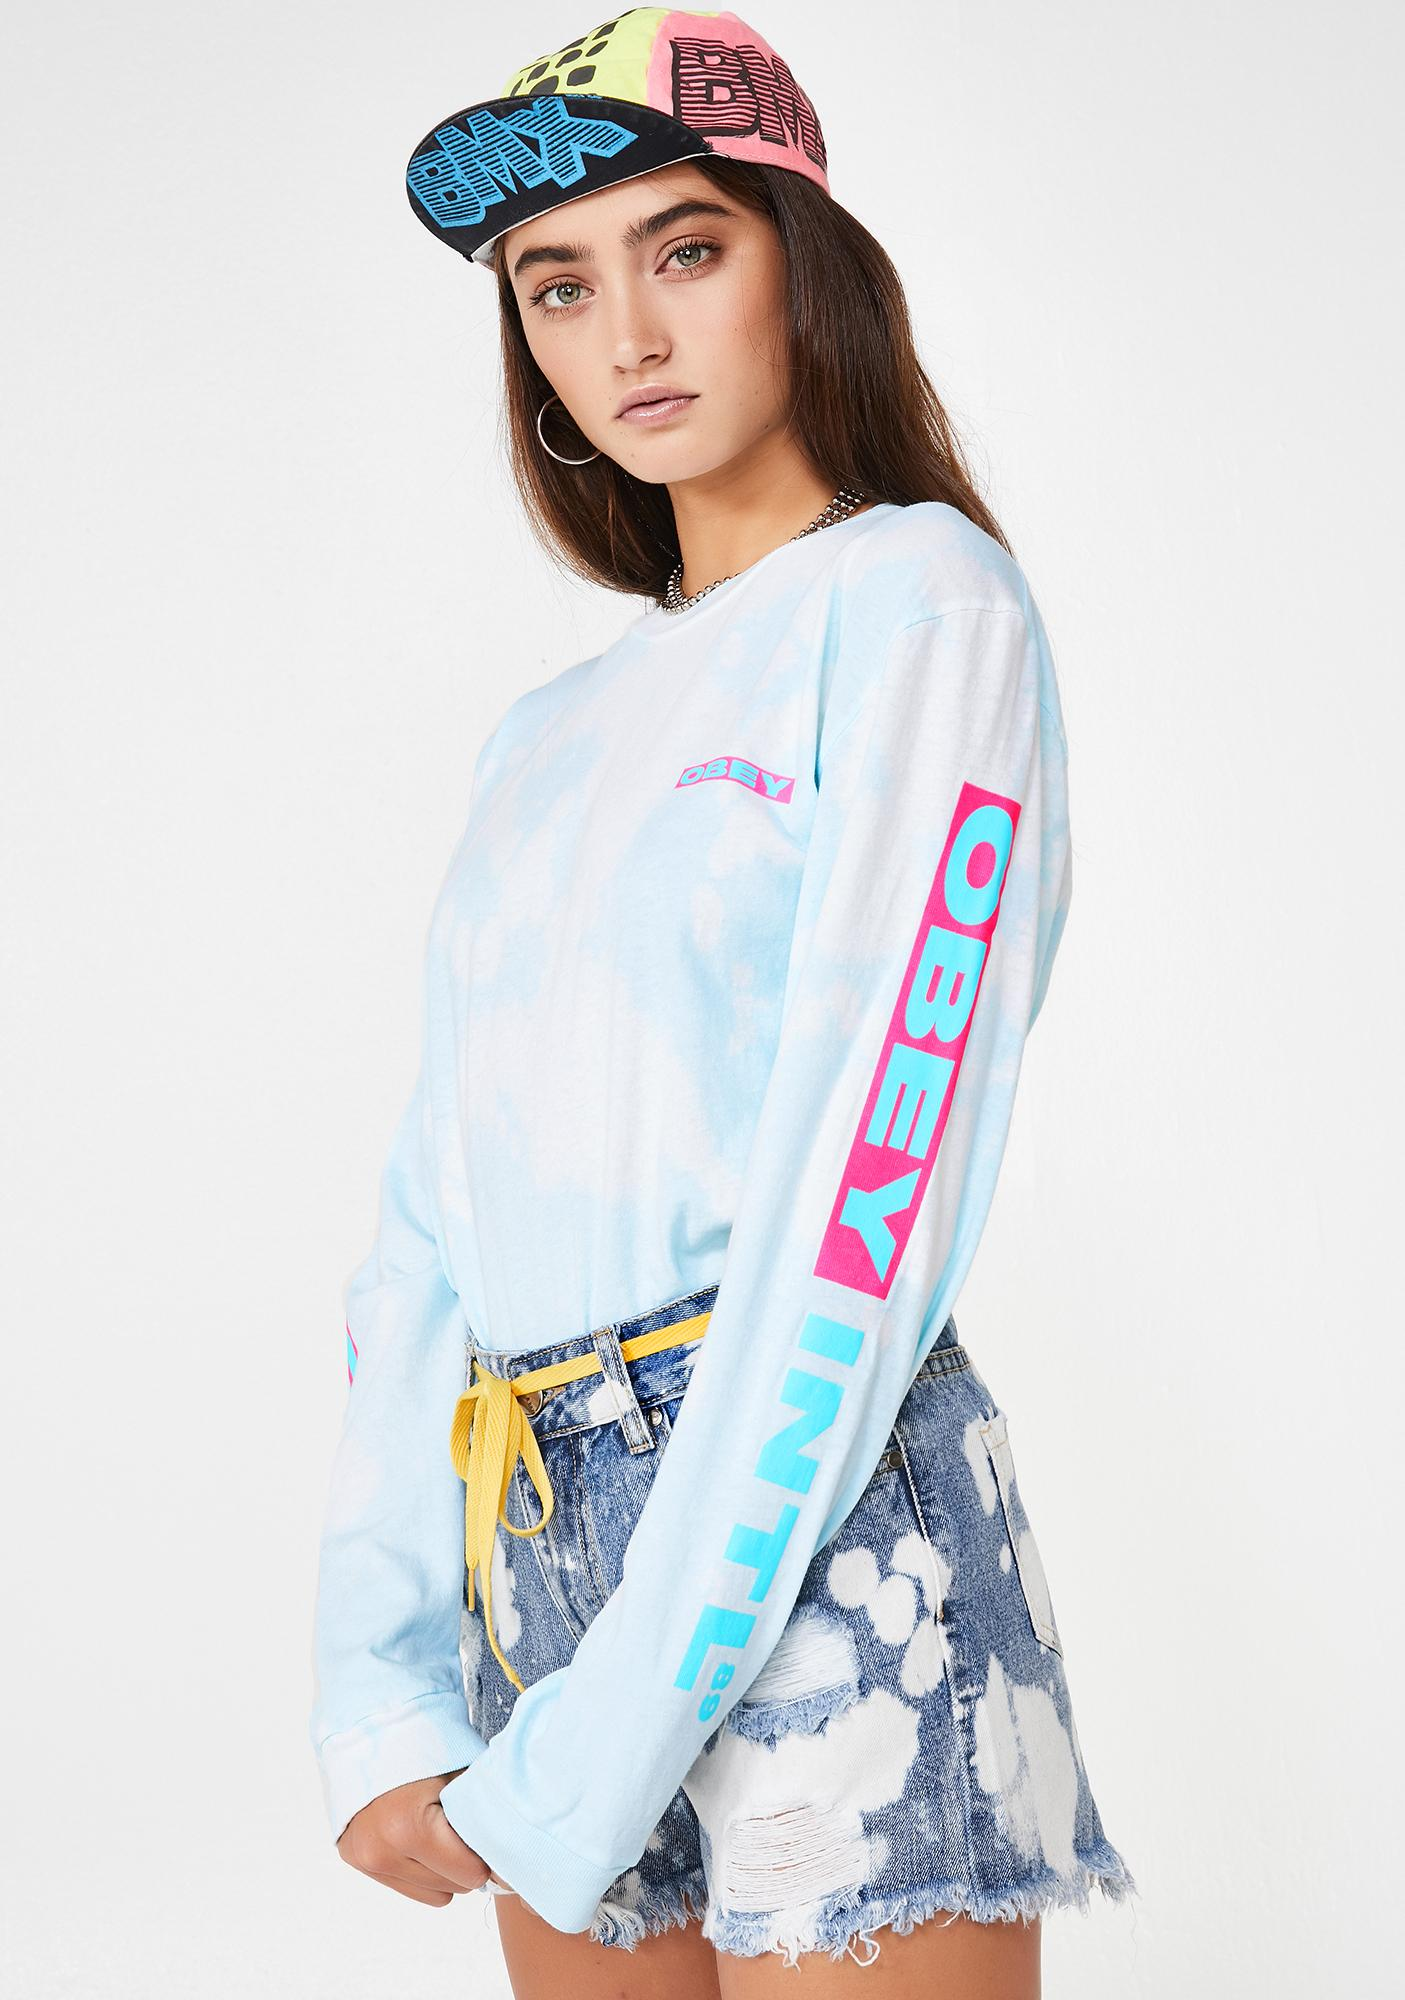 Obey OBEY Intl 89 Long Sleeve T-Shirt